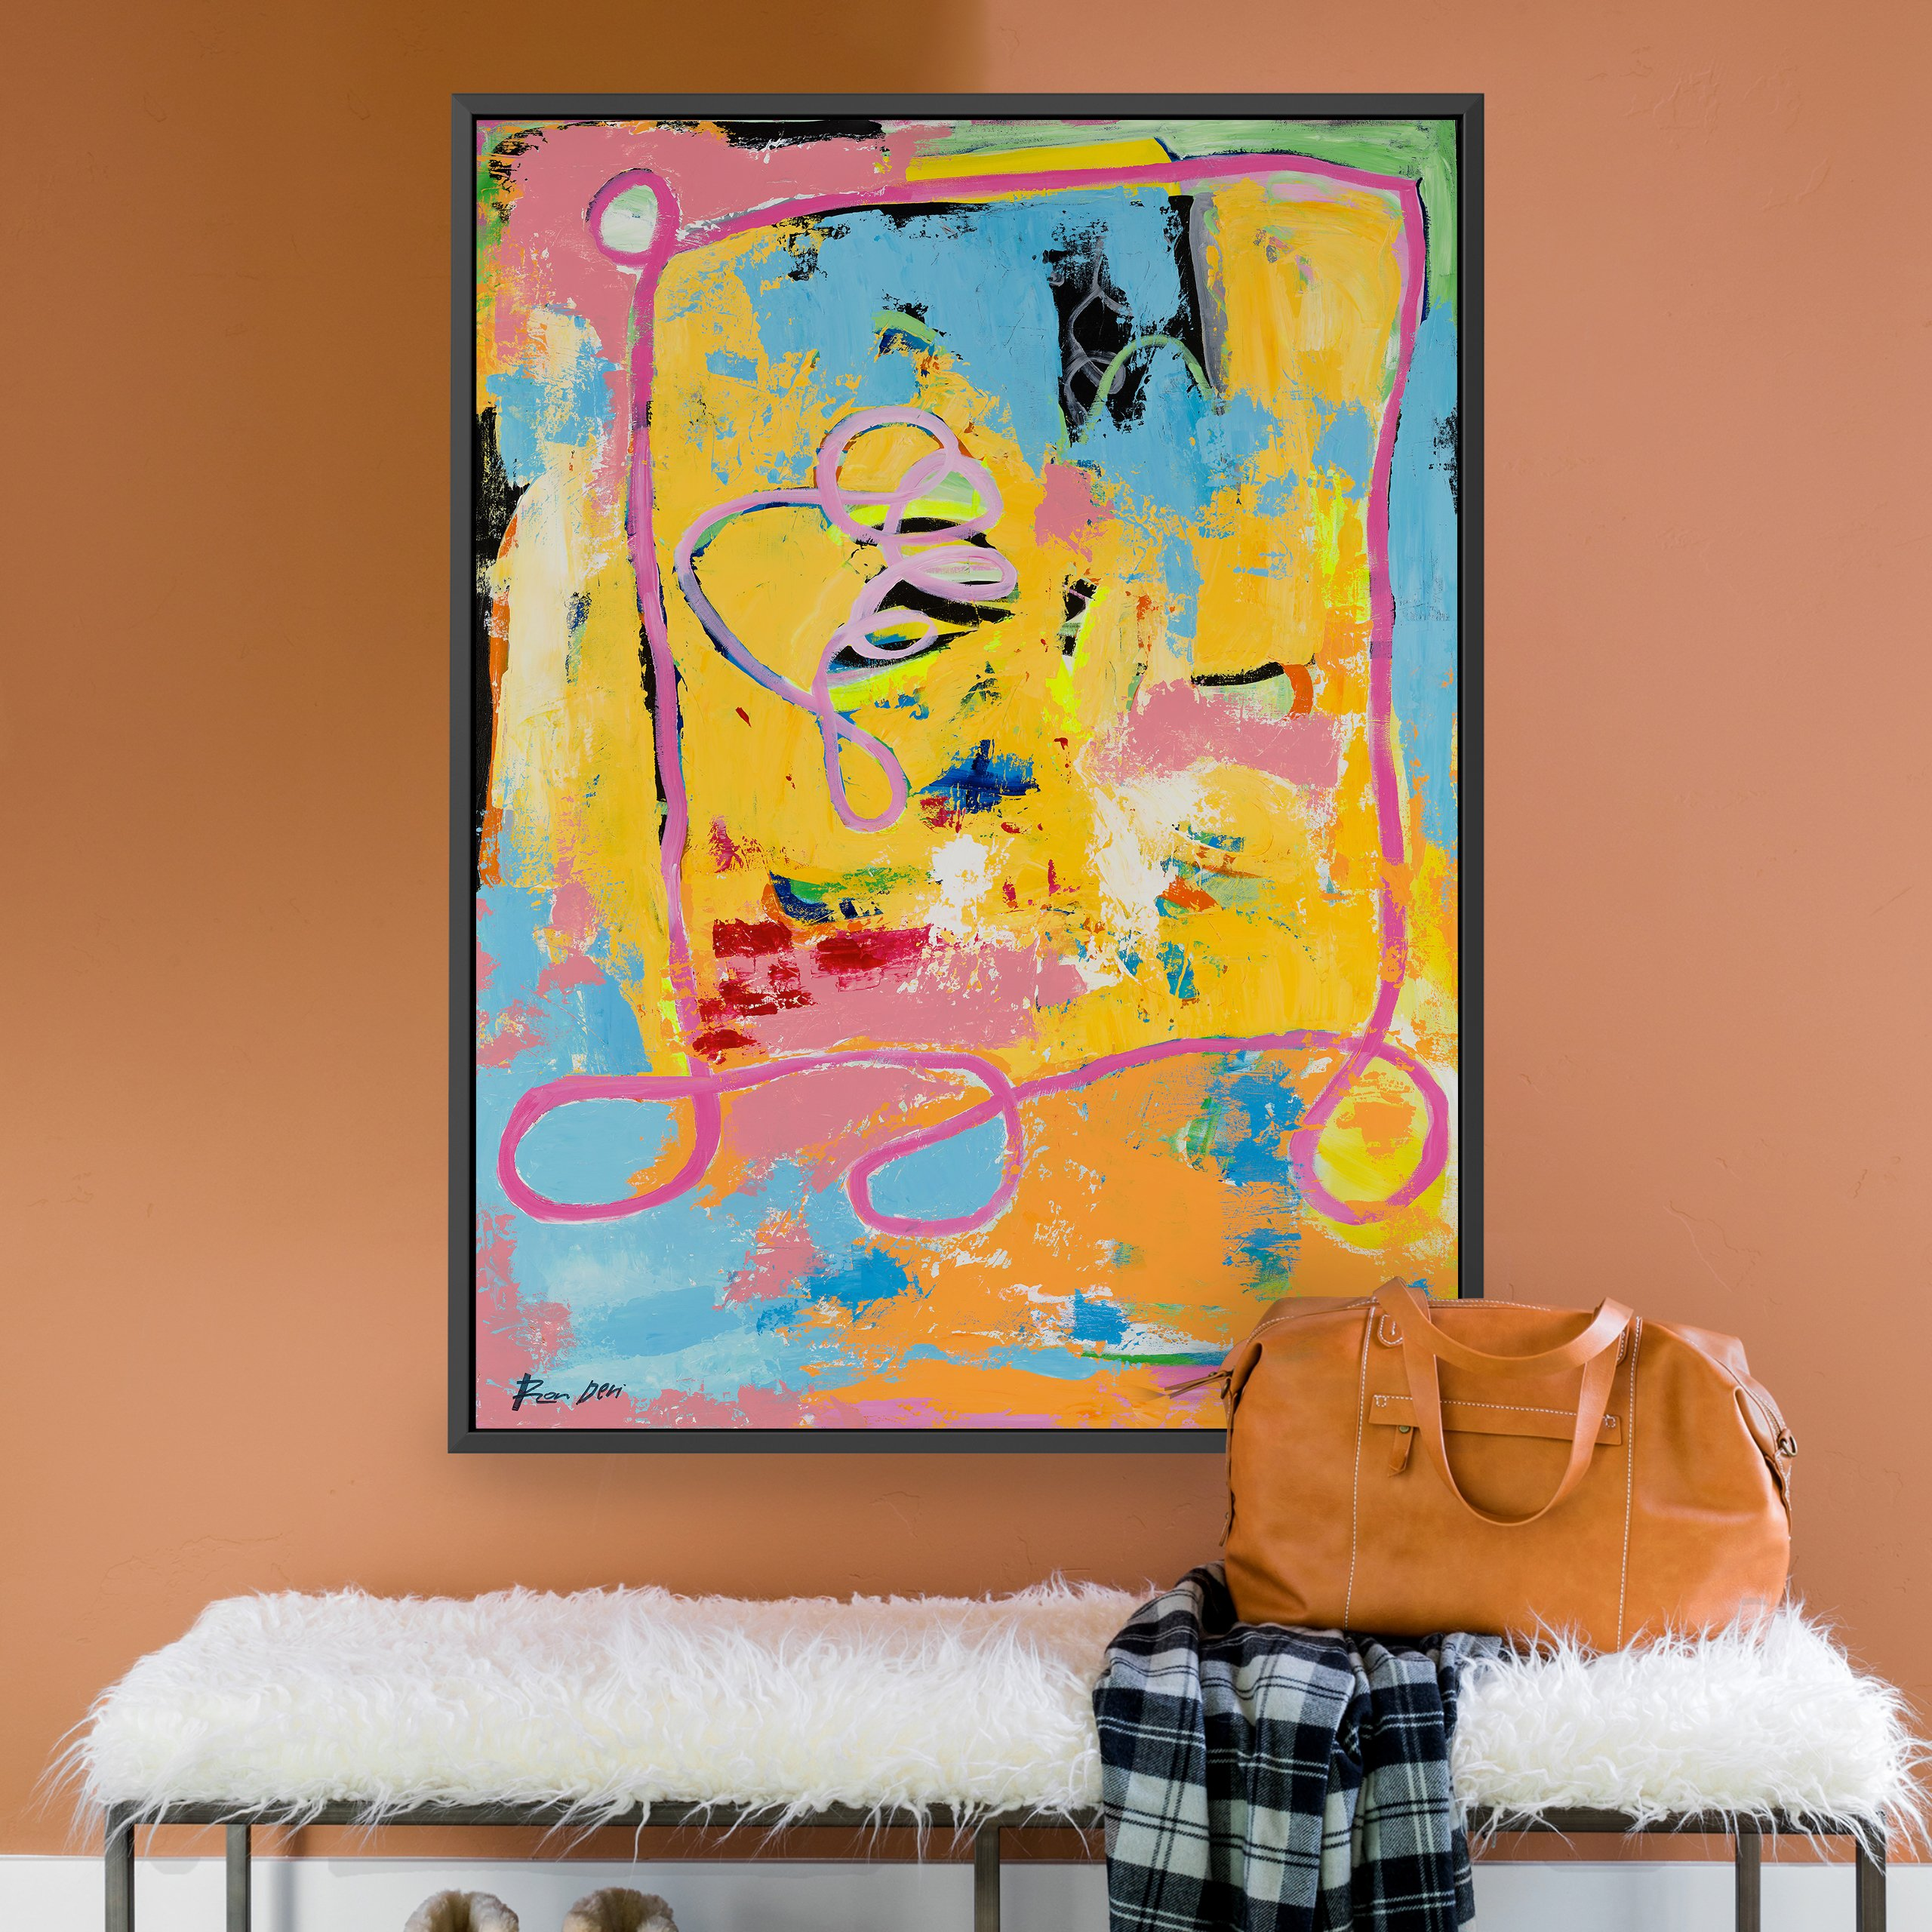 ron-deri-unnamed-large-abstract-art